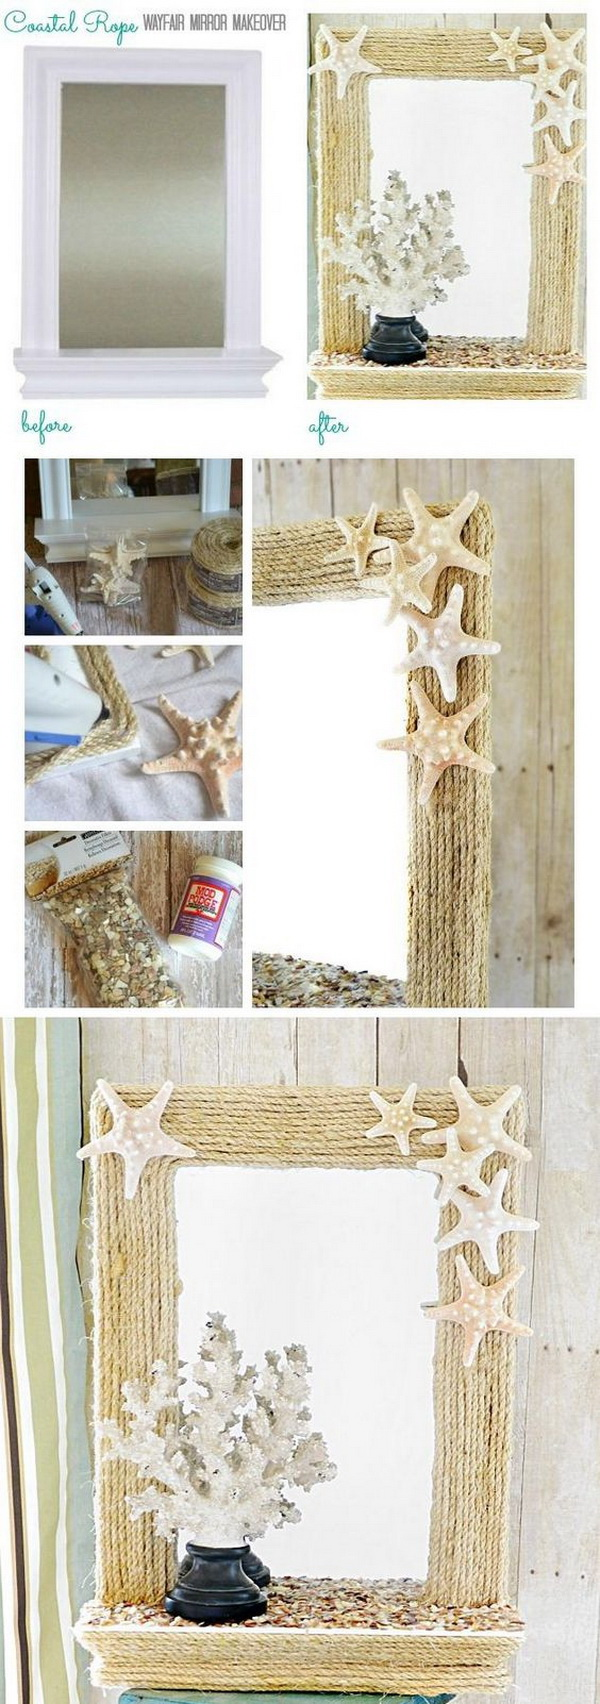 DIY Coastal Rope Mirror.